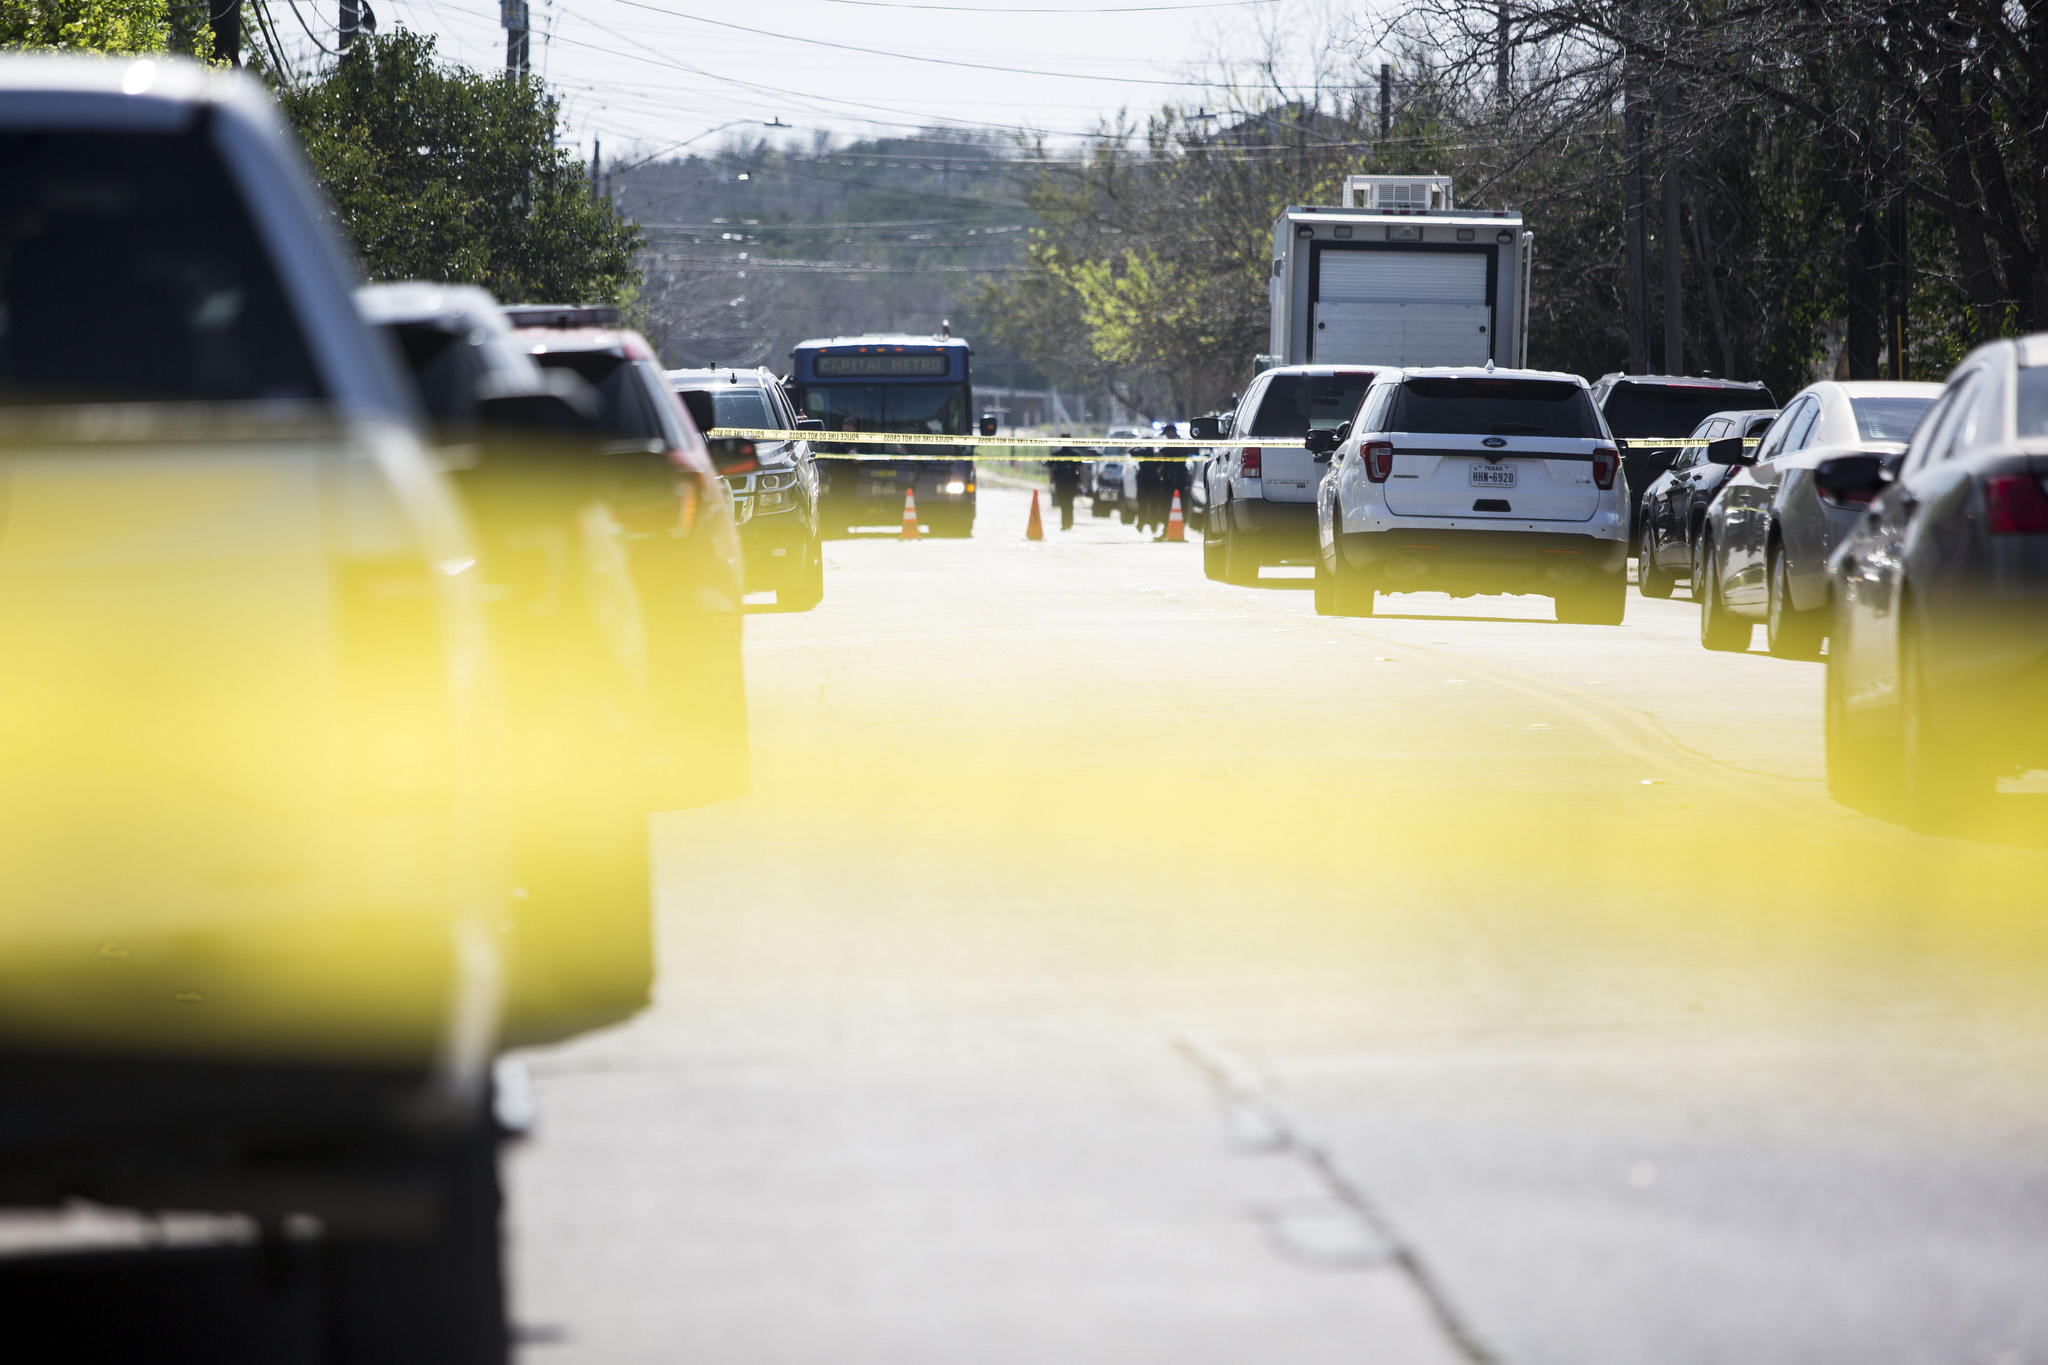 A package explosion yesterday on the 6700 block of Galindo Street left a 75-year-old woman with life-threatening injuries.